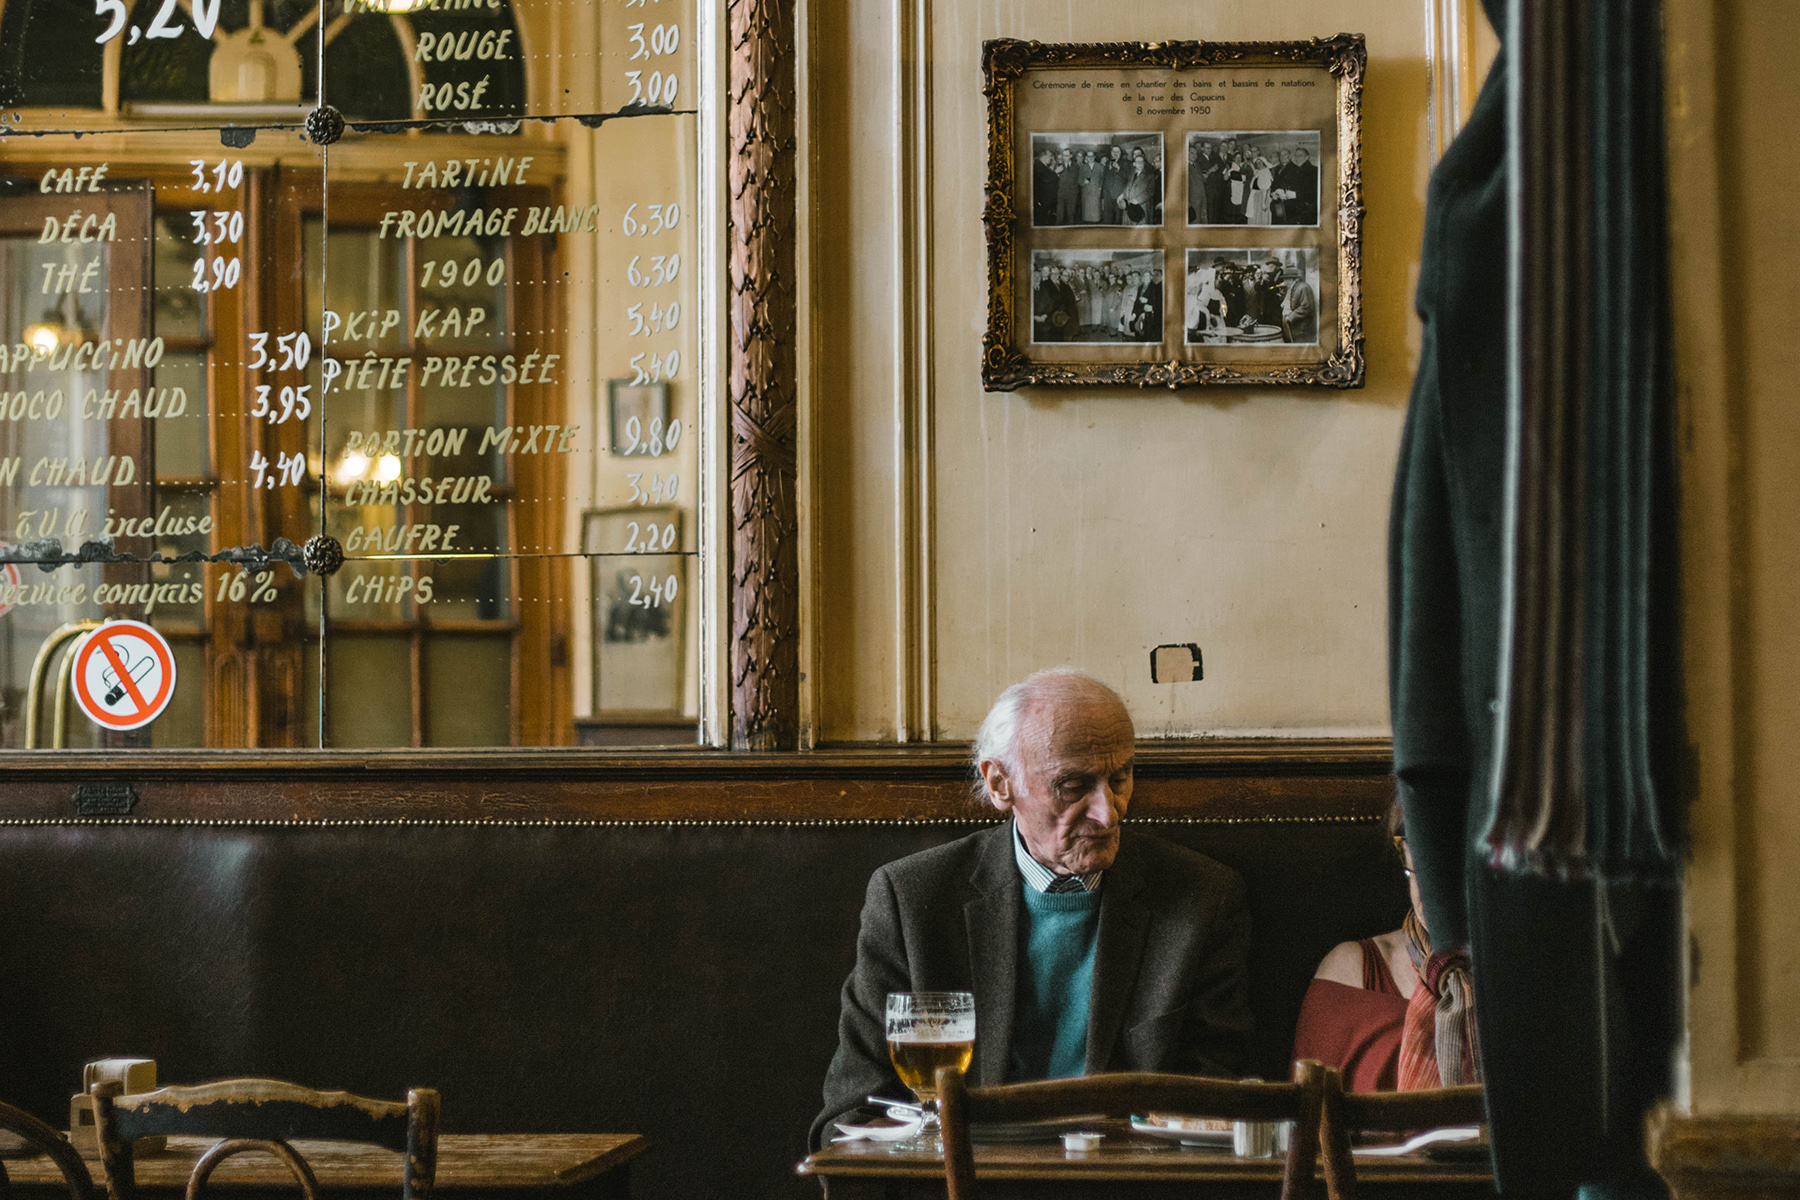 A couple reads the menu in a typical Brussels café